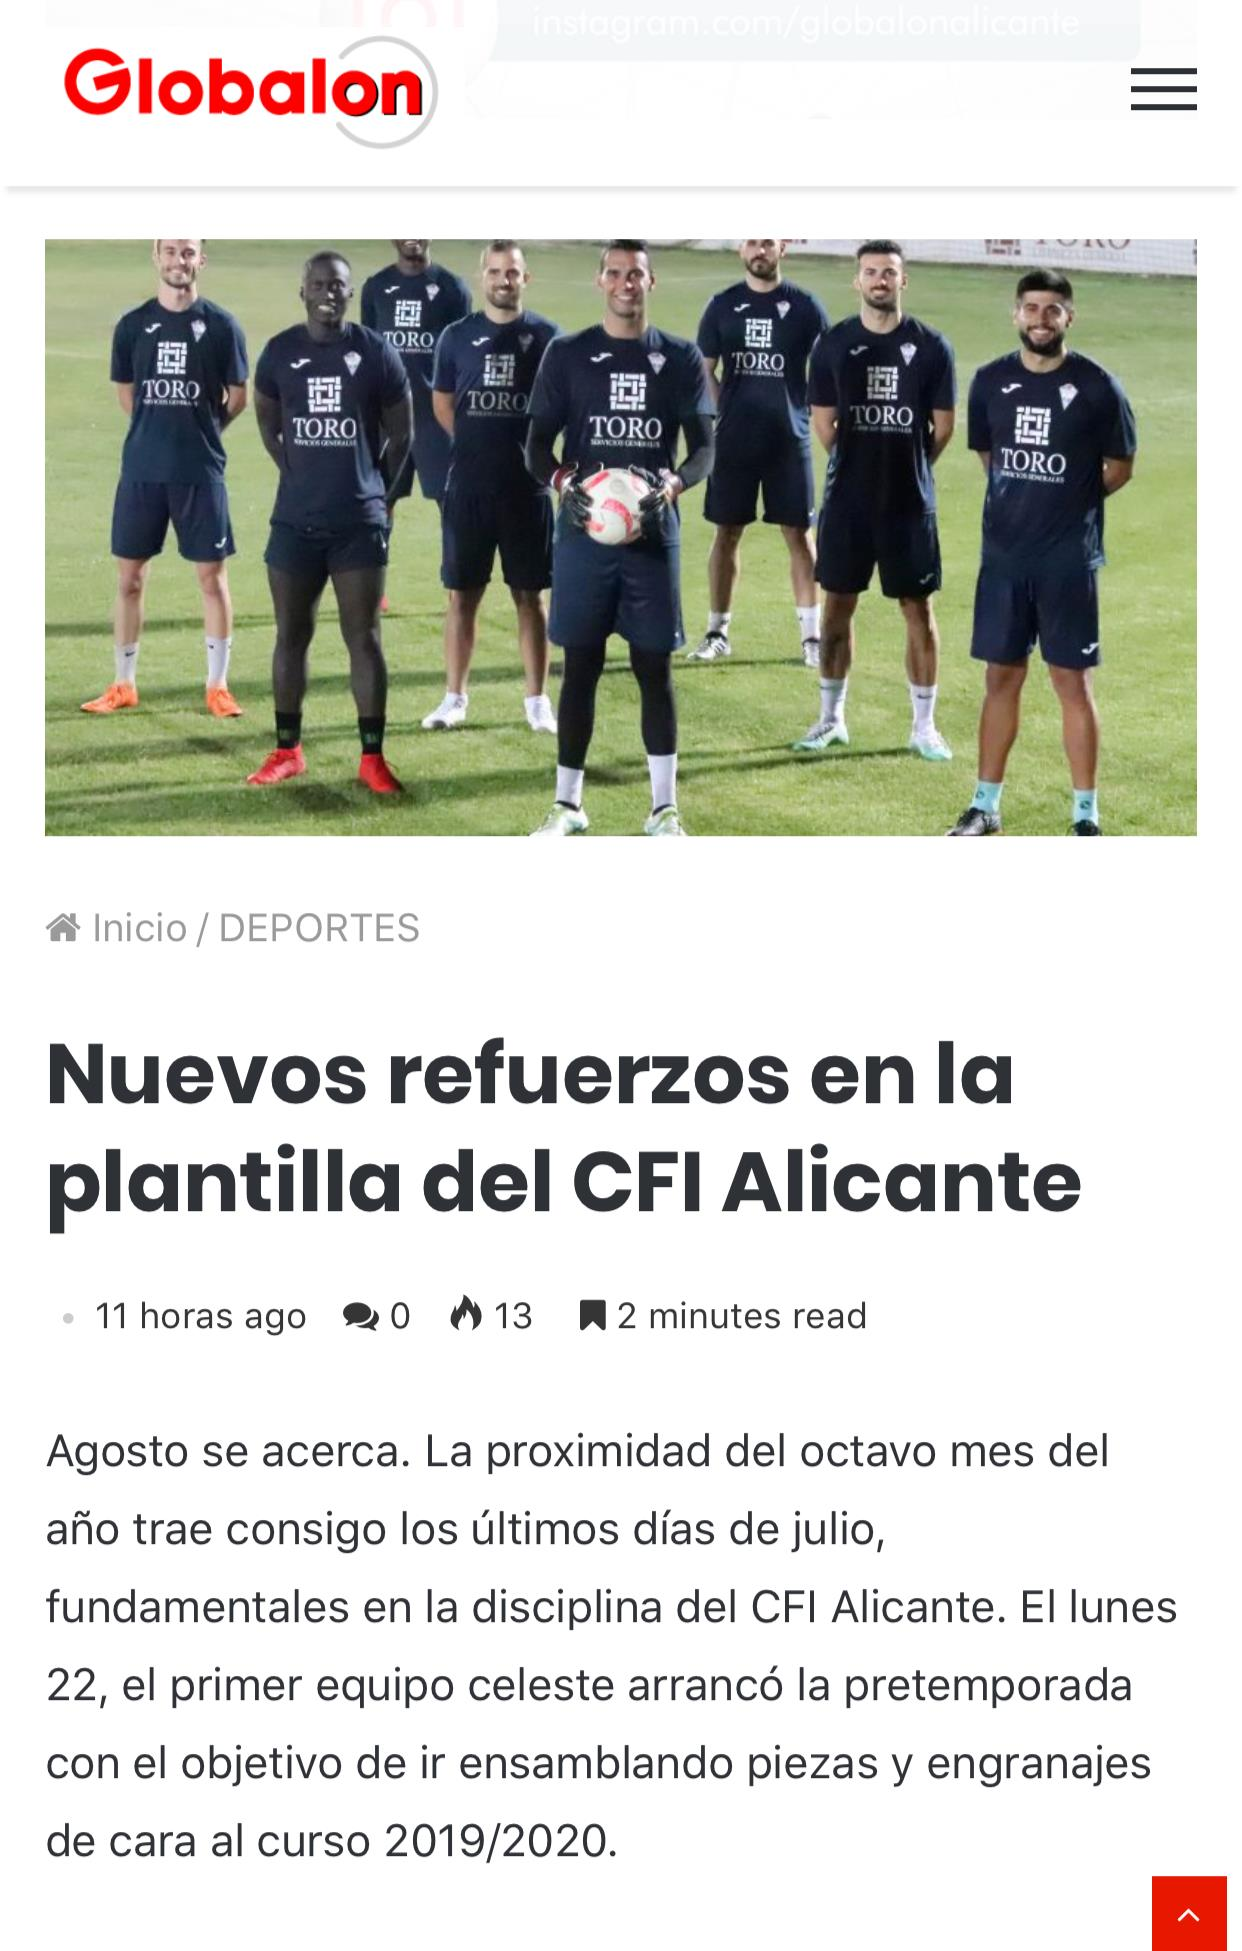 NOTICIA GLOBALON 28/